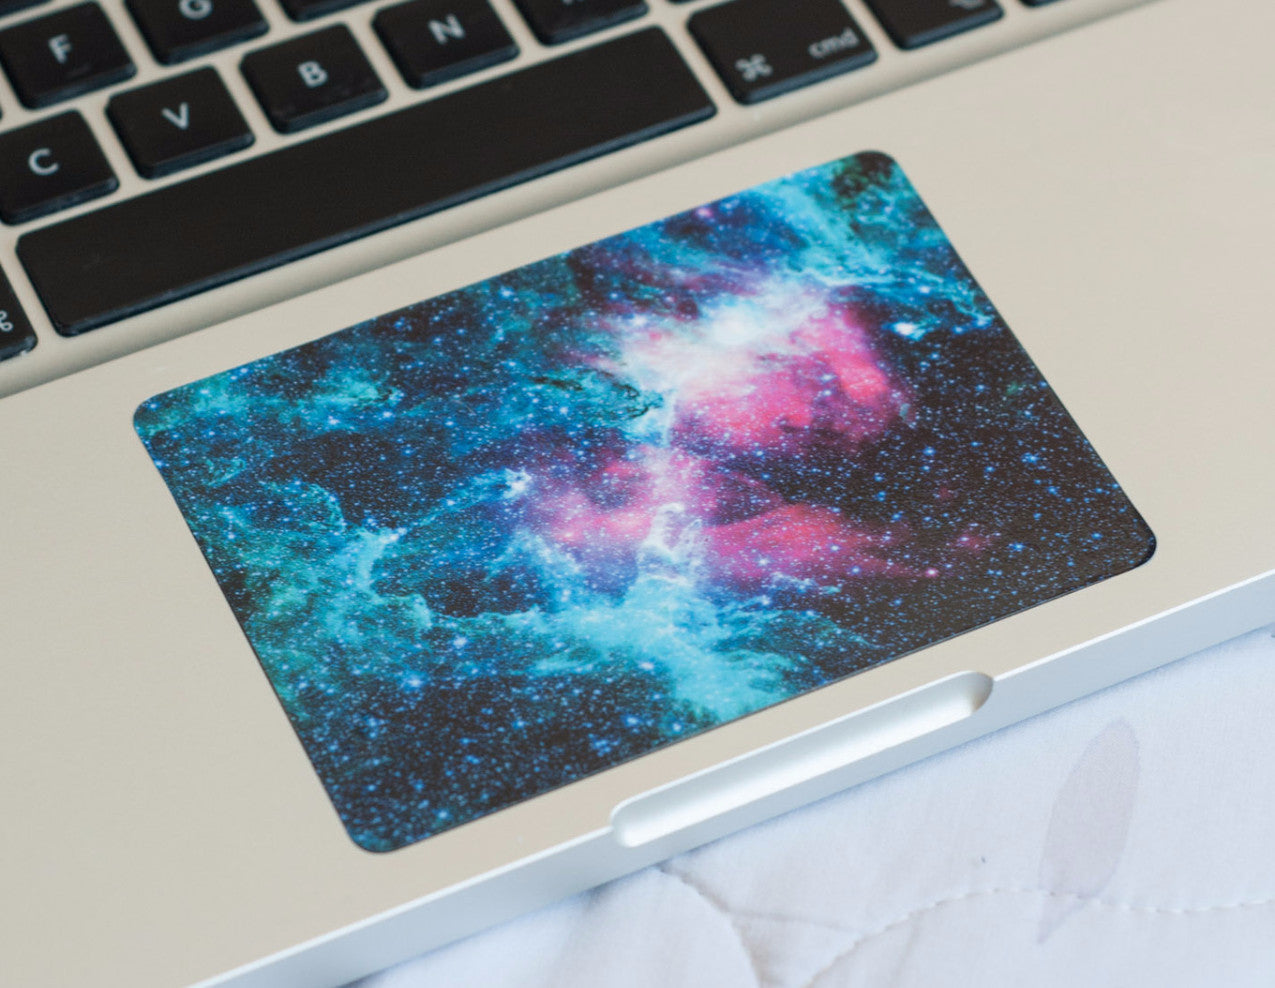 Macbook Trackpad Sticker Stellar Keyshorts